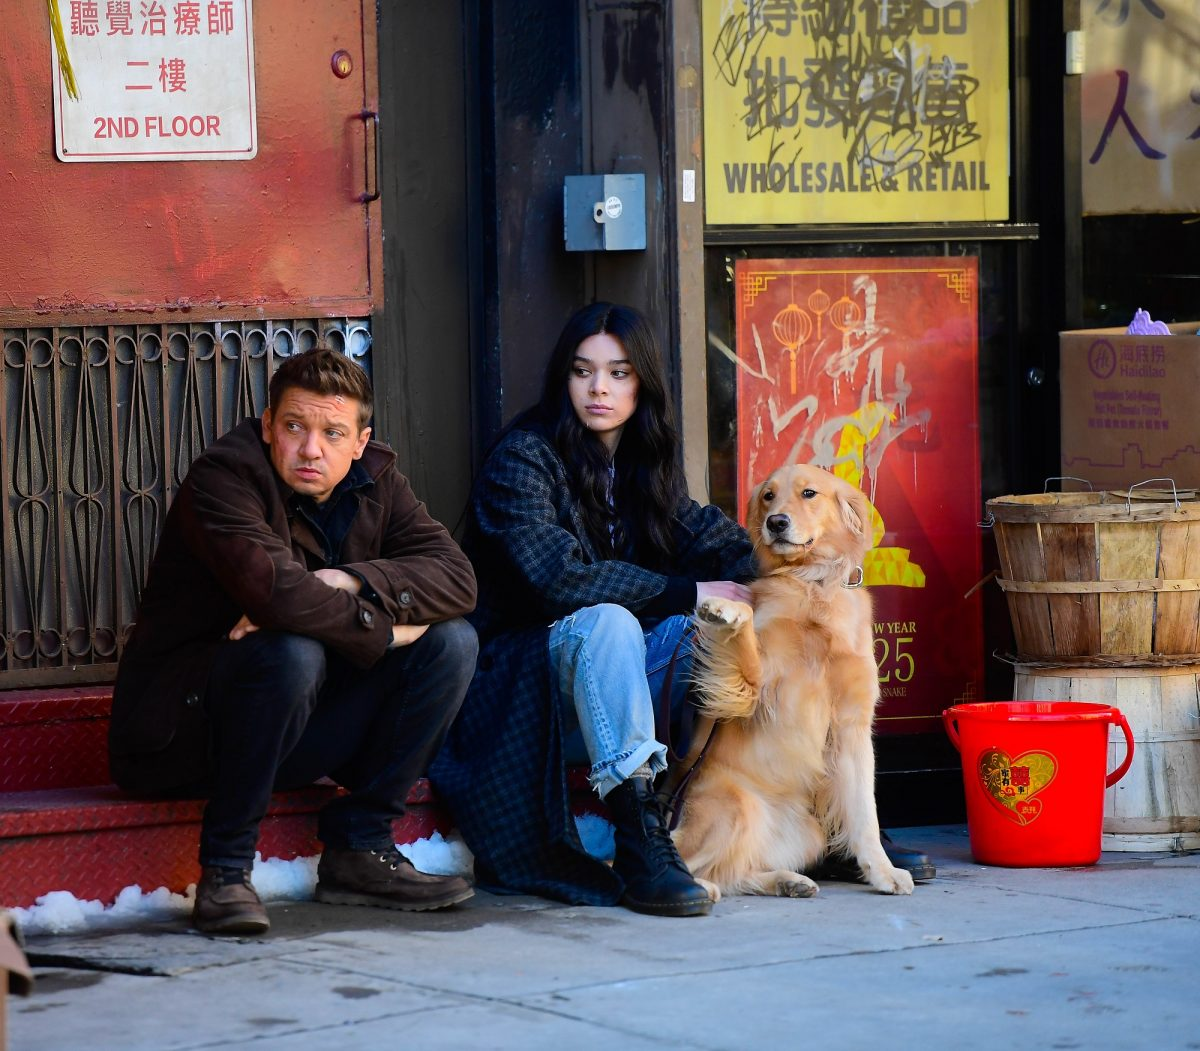 Jeremy Renner and Hailee Steinfeld are seen on the set of 'Hawkeye' in Chinatown on December 3, 2020 in New York City.